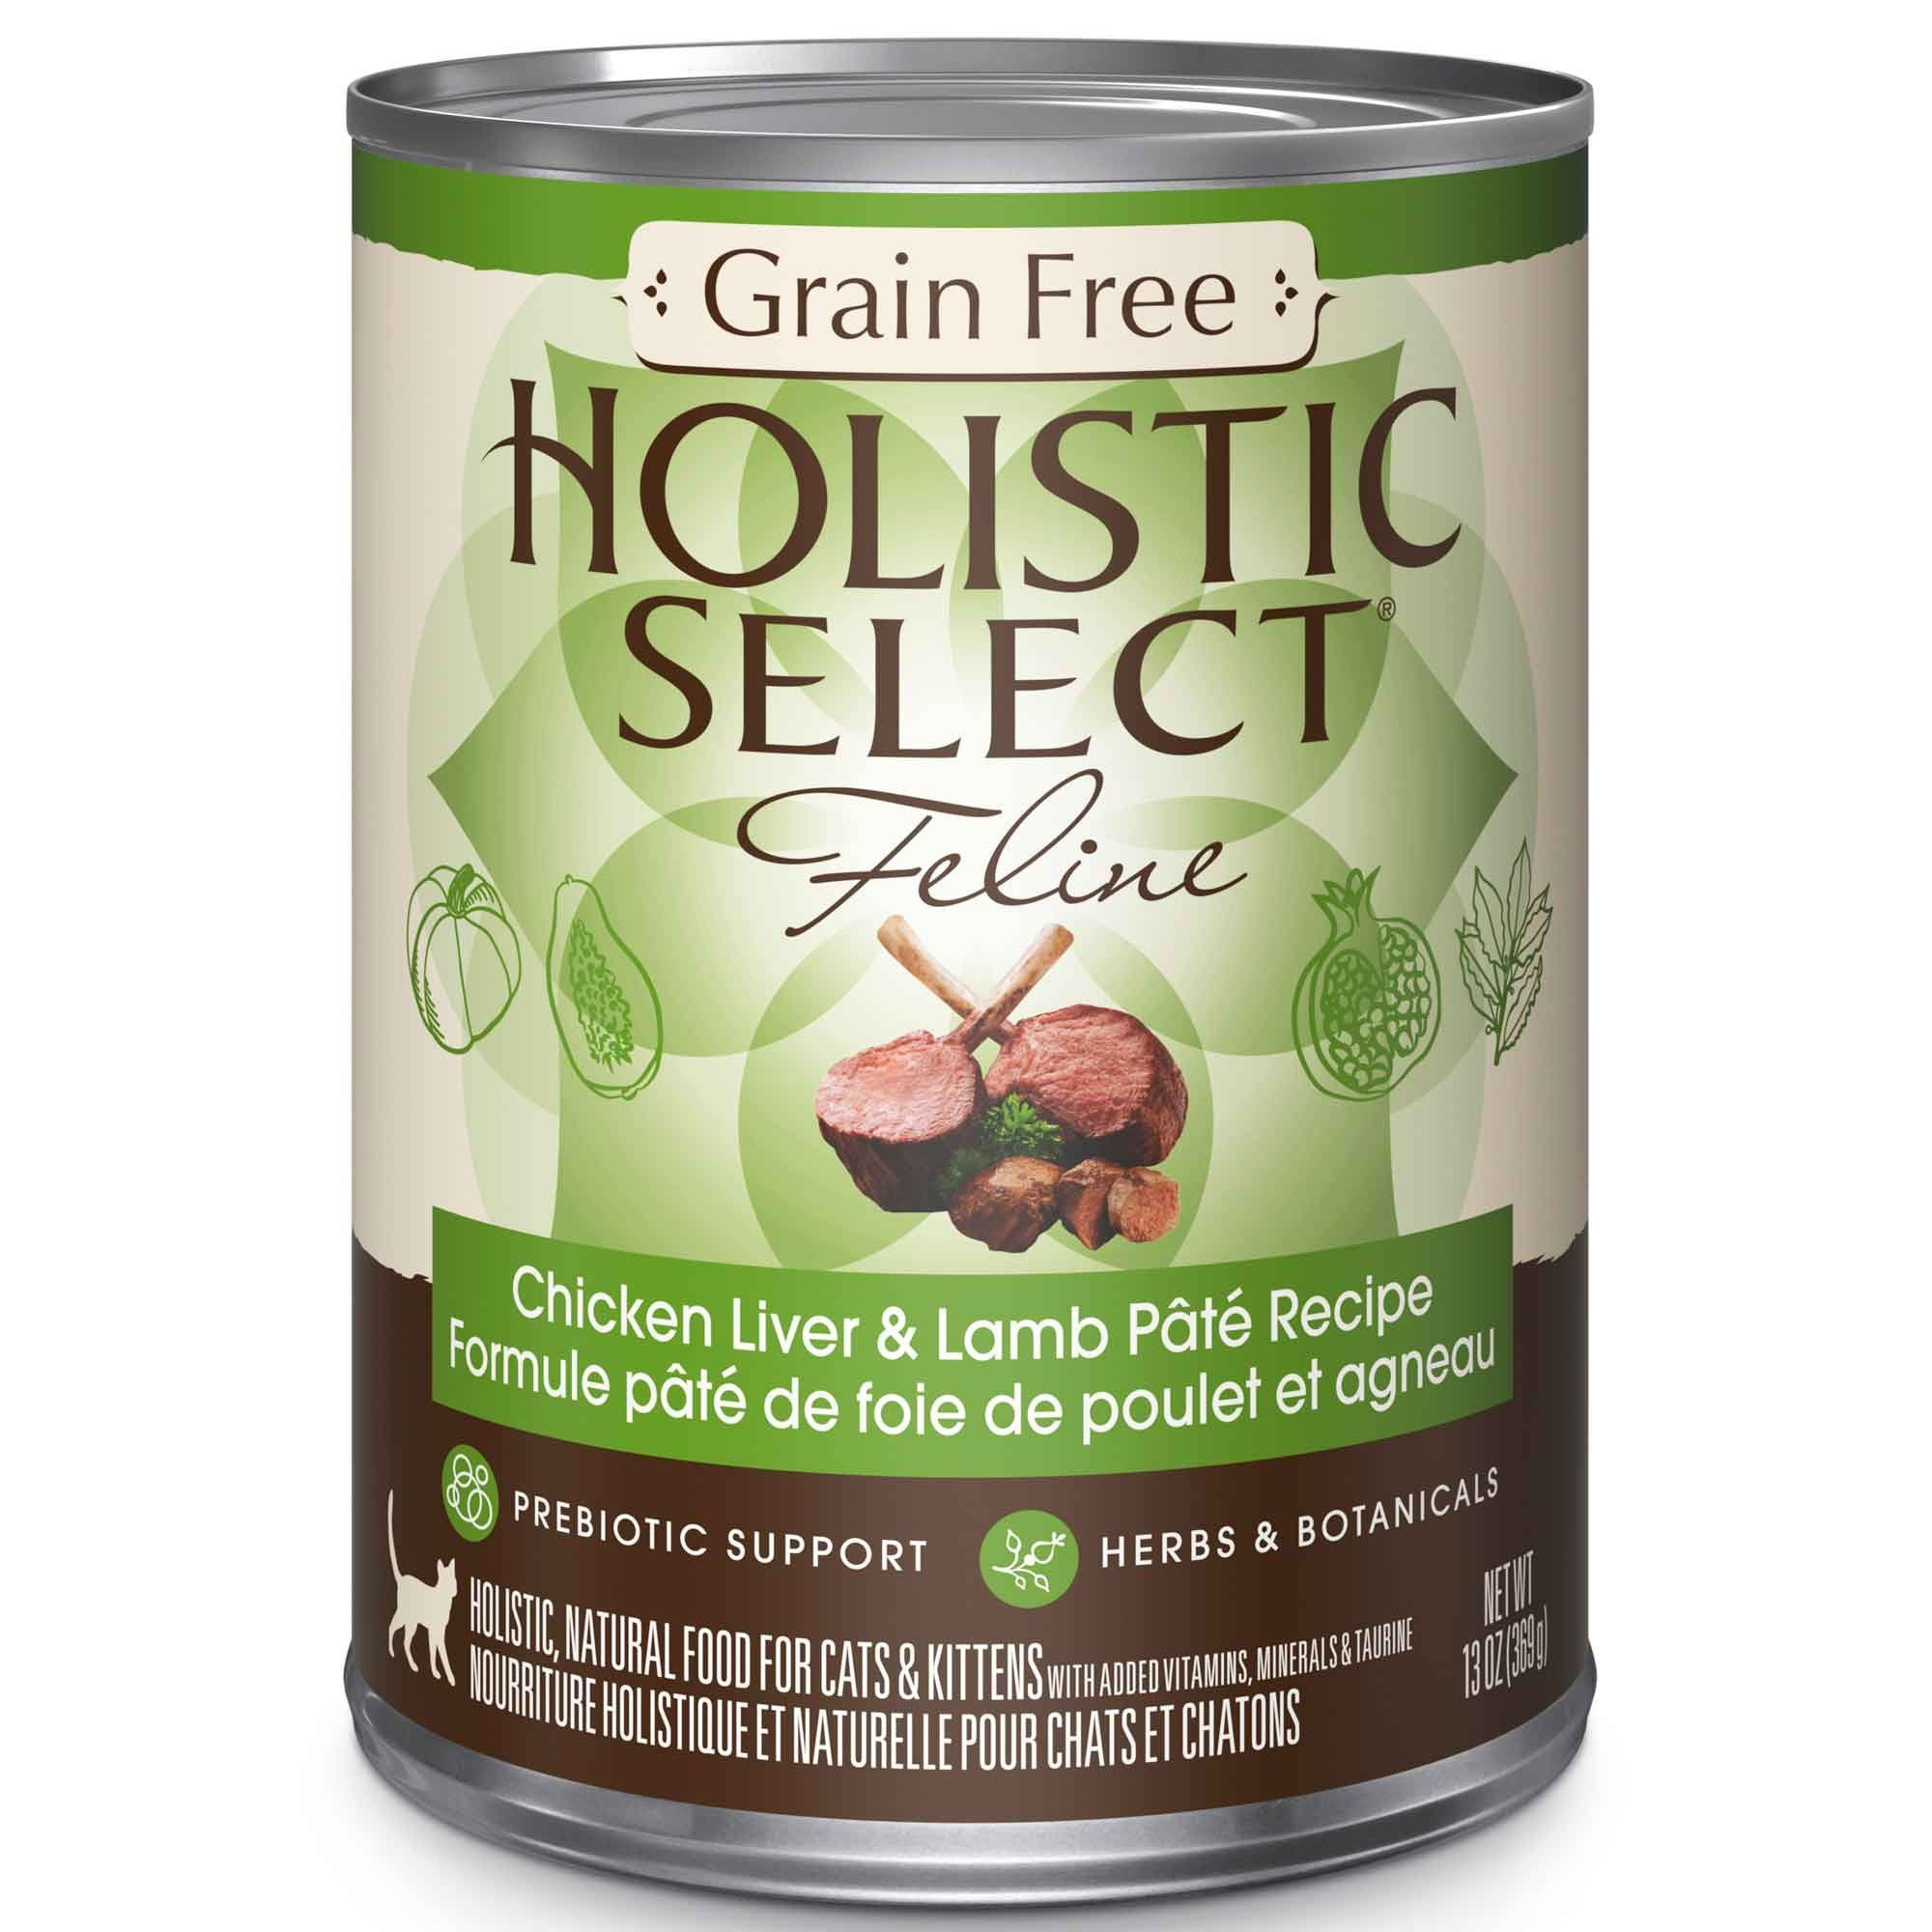 Holistic select cat food grain free chicken liver lamb pate holistic select cat food grain free chicken liver lamb pate forumfinder Gallery